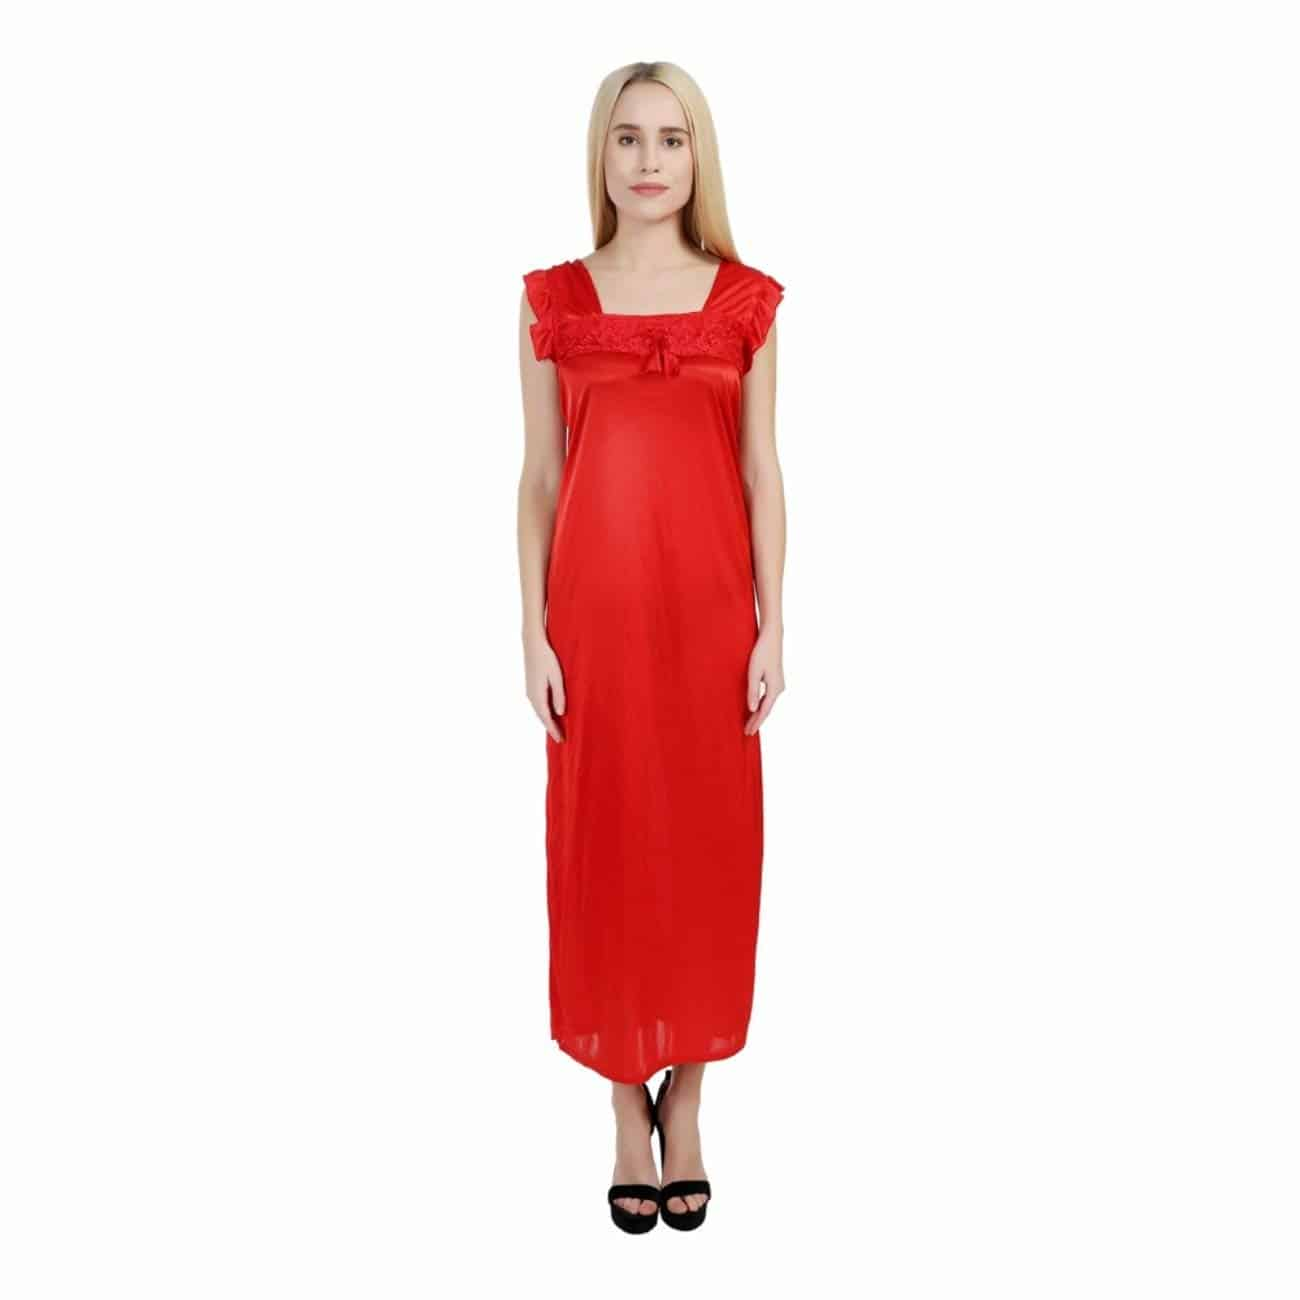 SSIYAA Women's Red Nighty | Designer Satin Red Nightdress for Women (Free Size)  https://www.amazon.in/dp/B07FPKFZLH  #nighty  #nightsuit #nightwear #nightyforwomen